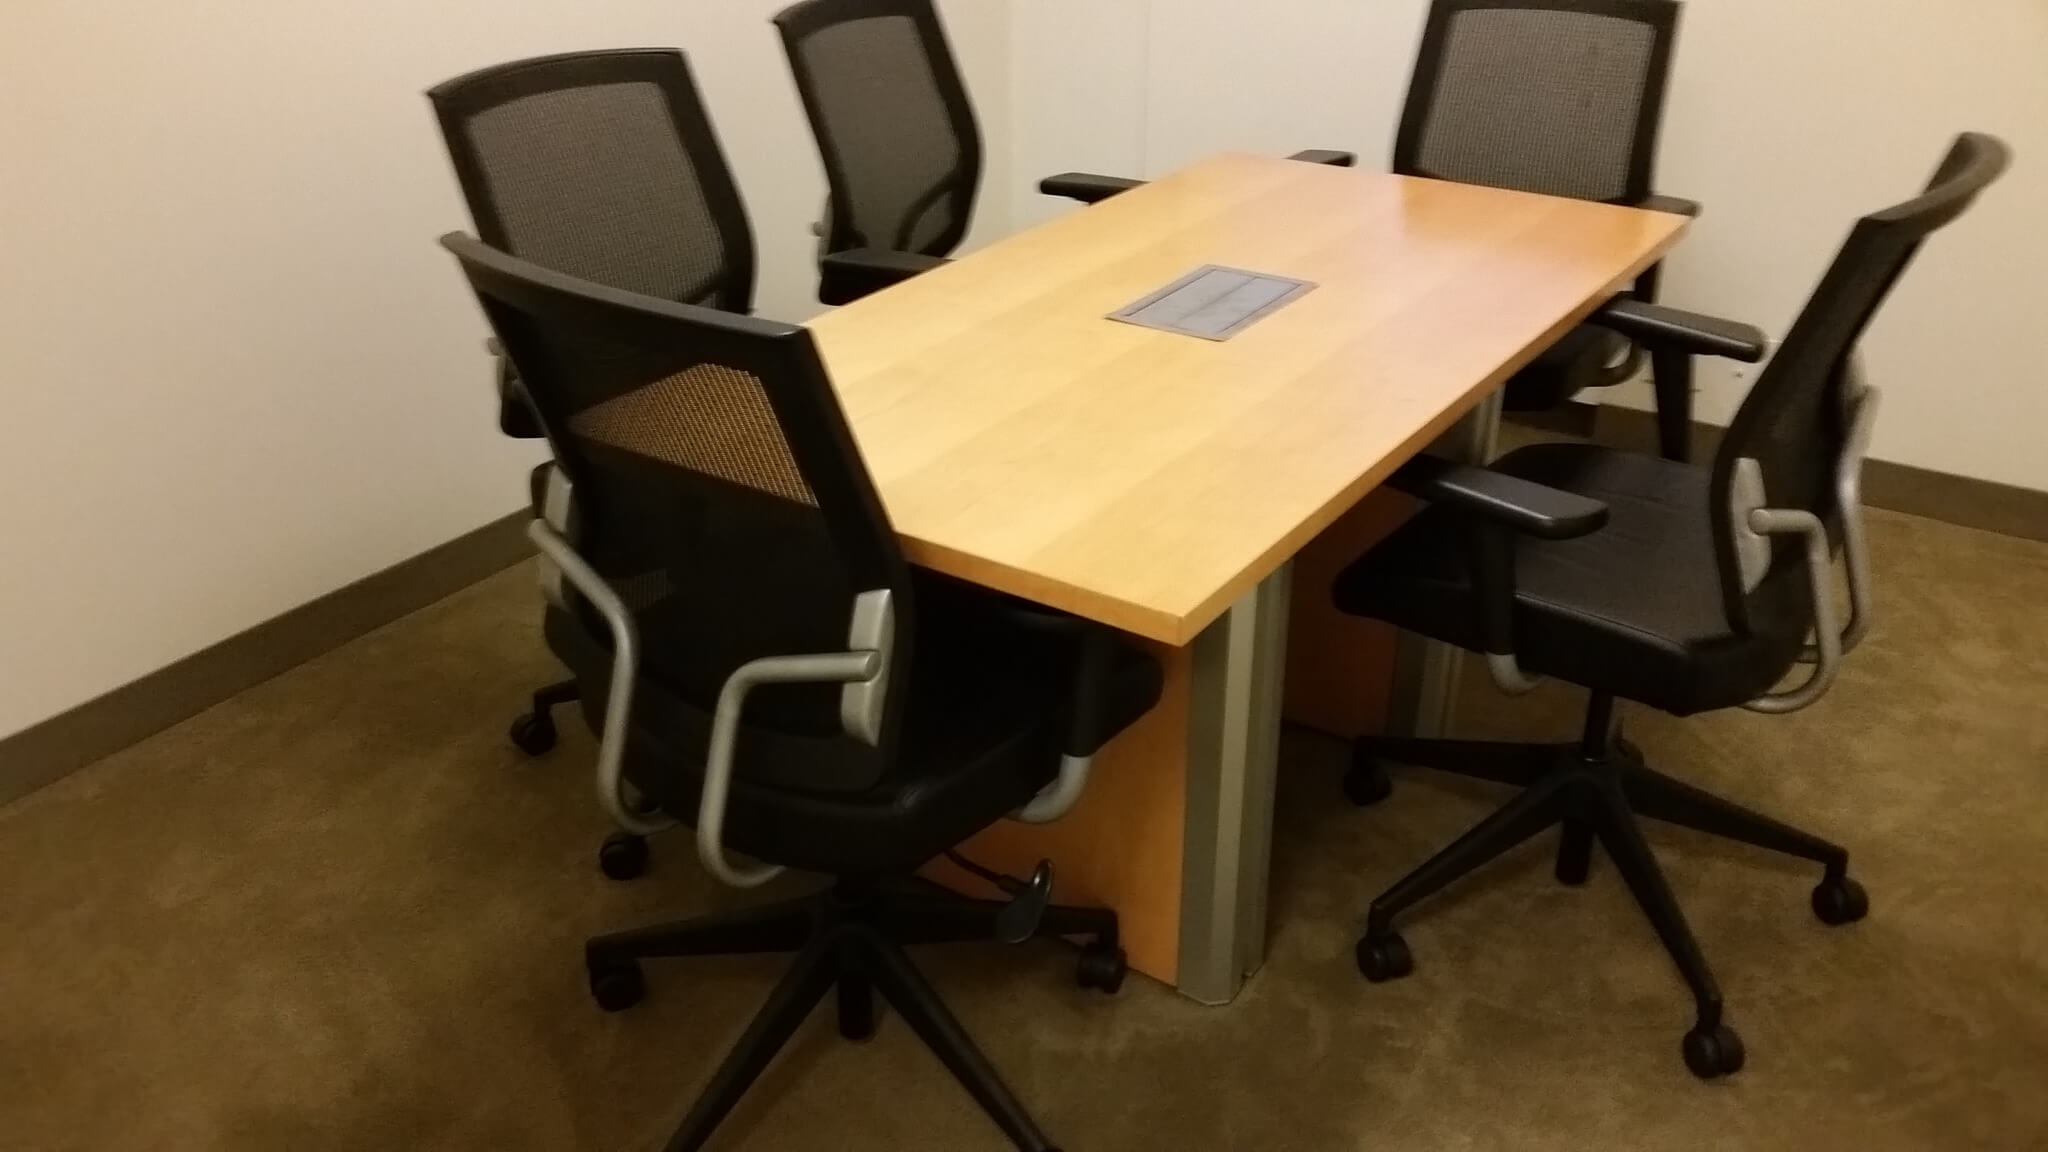 used conference table chairs chair design mind map teknion 5x2 5 office furniture